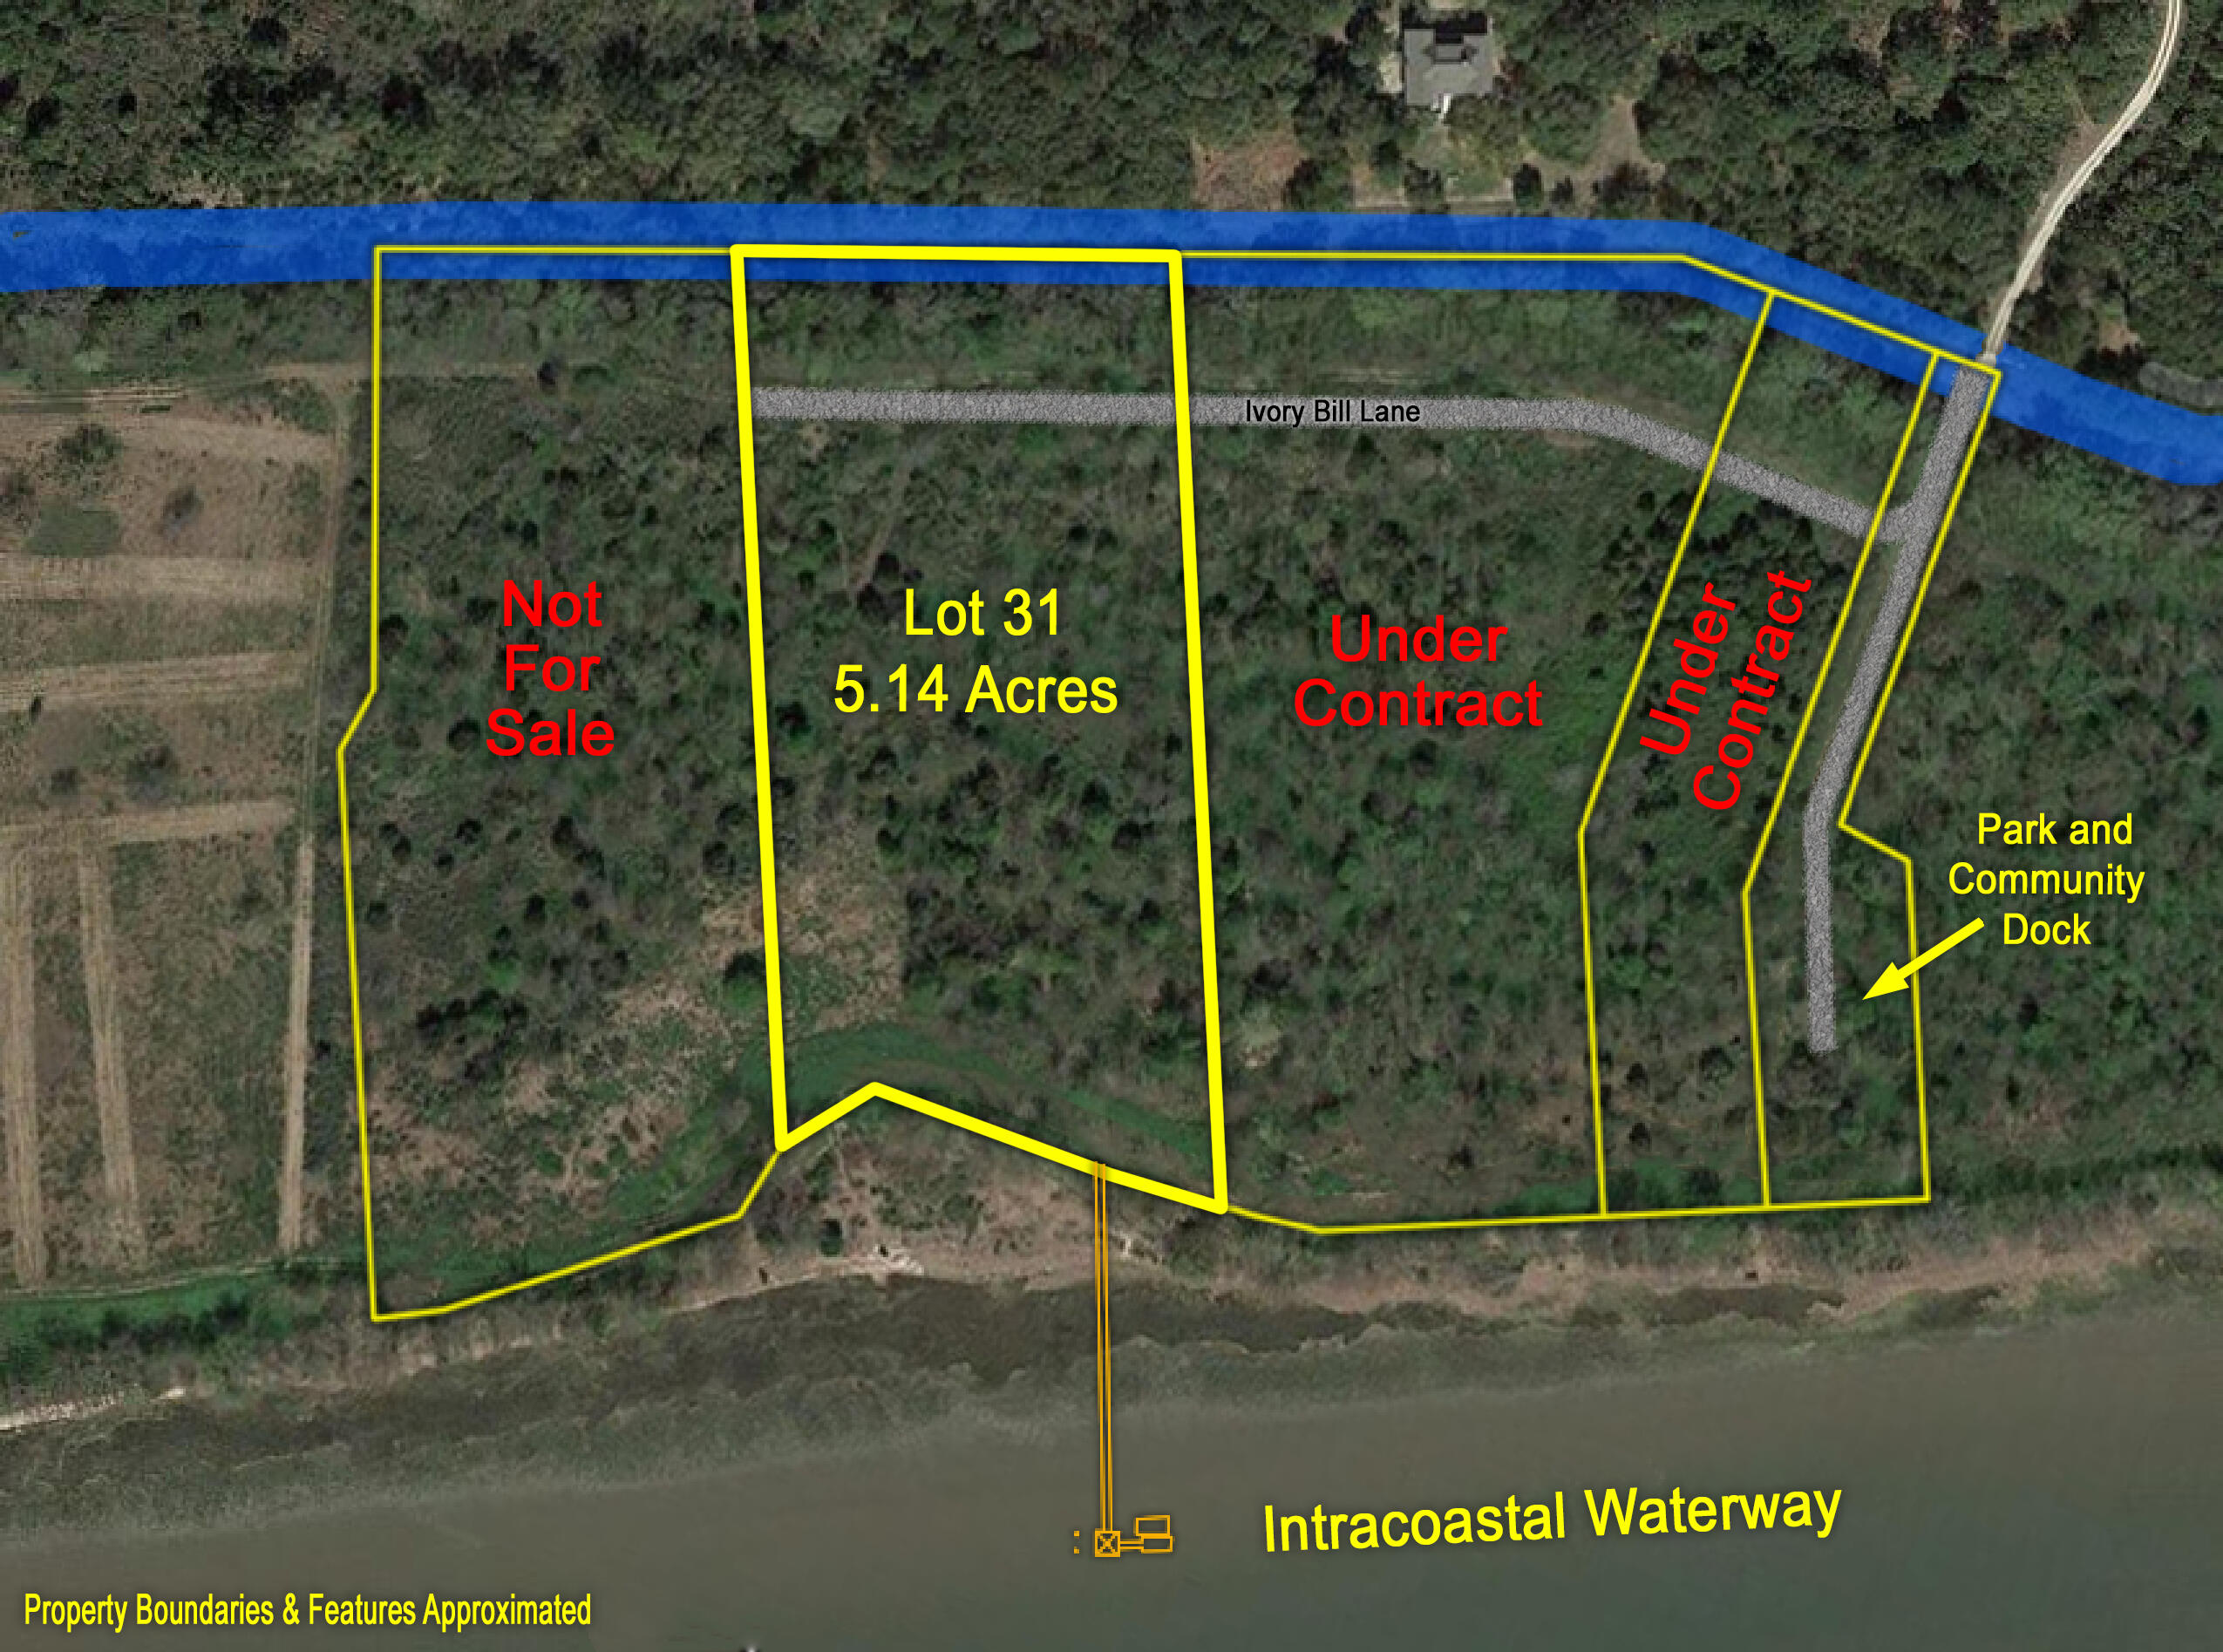 Last remaining ICW waterfront lot for sale in Mouzons Bluff! Deep-water lot rising nearly 20 feet above the water's edge in an x flood zone with no requirement to build up. This location offers a truly unparalleled view of the Intracoastal Waterway and the protected marshes, creeks, barrier islands, lighthouses, and uninhabited beaches of the Cape Romain Wildlife Refuge. This paradise awaits less than 22 traffic-free miles (25 minutes) north of Mount Pleasant where you can truly escape the hustle and bustle of the outside world! The tract has nearly 300 feet of frontage on the ICW. Master Dock plan approved and proposed dock application calls for a 268' walkway to the pier head with floating dock and boat lift. 5-bedroom septic permits pending.  Listing agent is related to sellers.